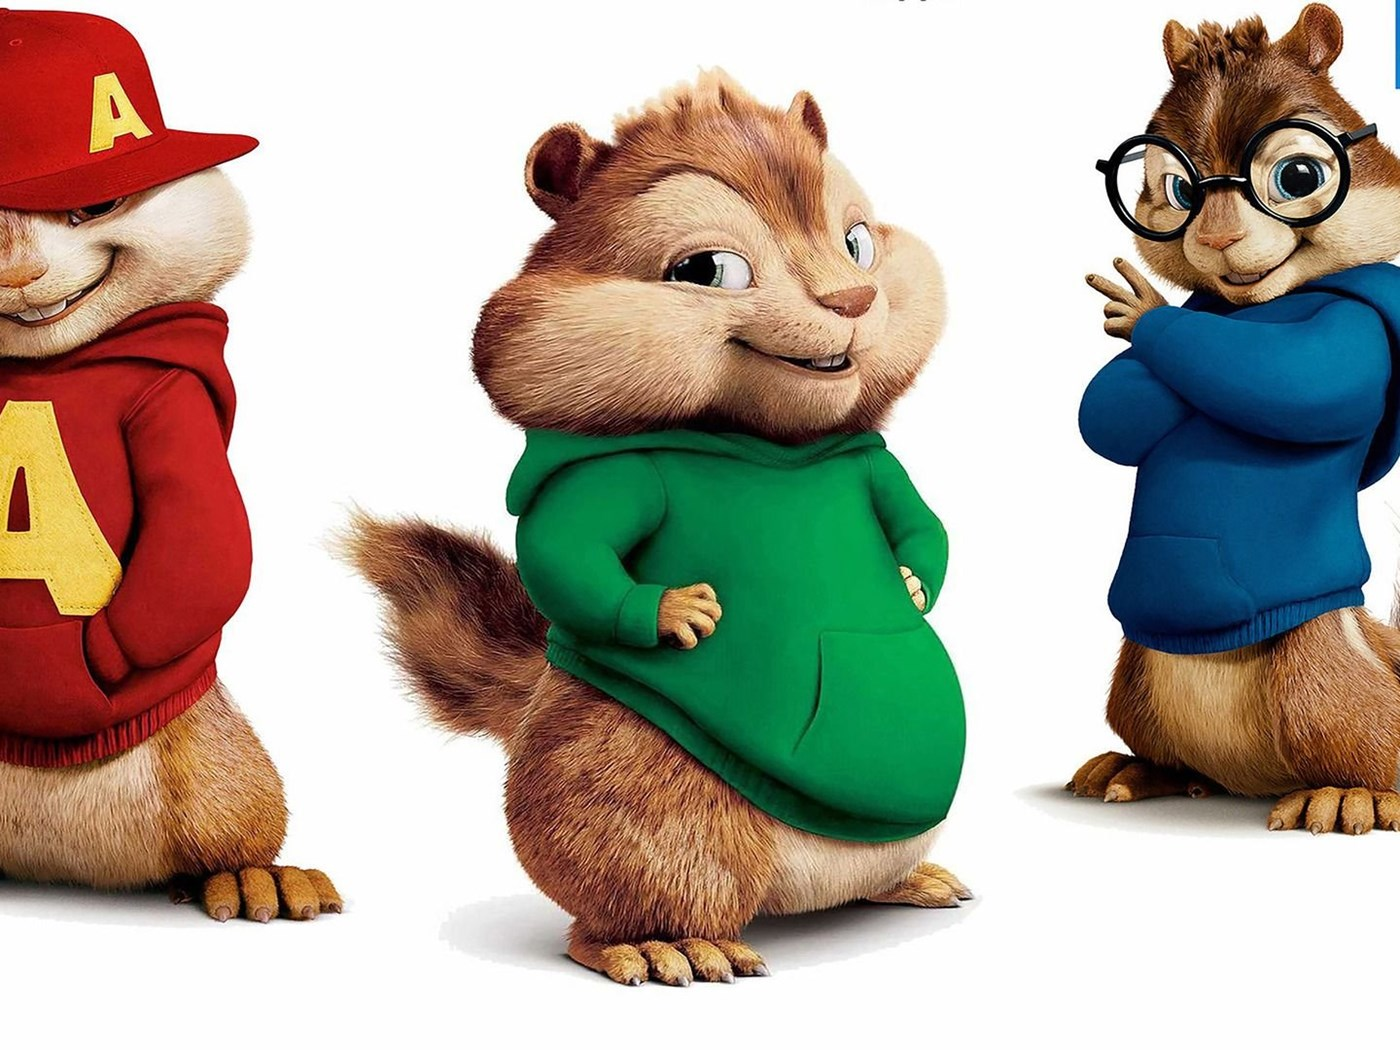 Alvin And The Chipmunks Wallpapers Desktop Background